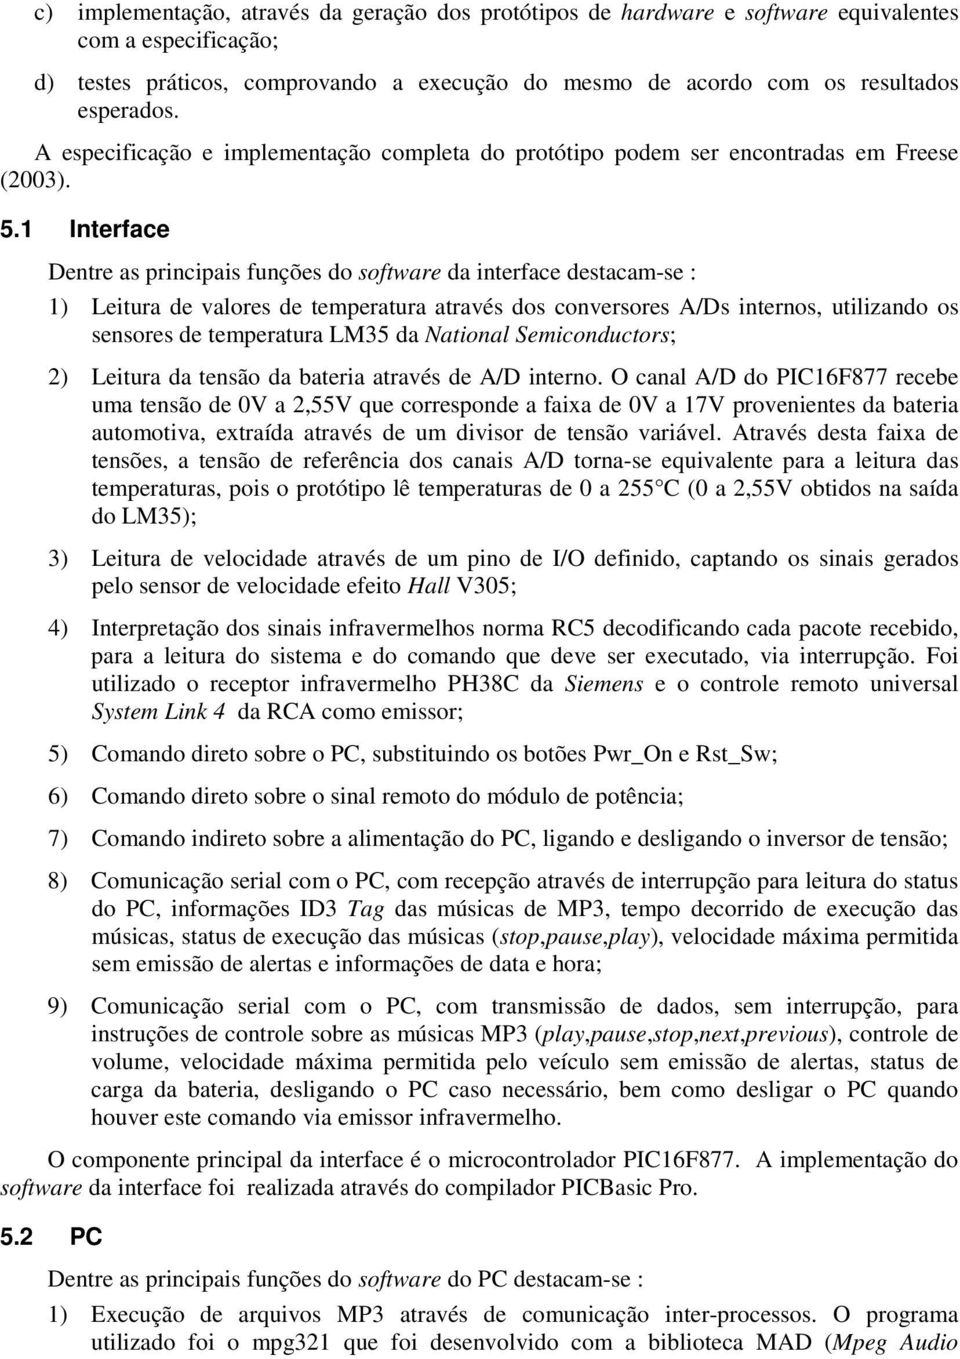 1 Interface Dentre as principais funções do software da interface destacam-se : 1) Leitura de valores de temperatura através dos conversores A/Ds internos, utilizando os sensores de temperatura LM35